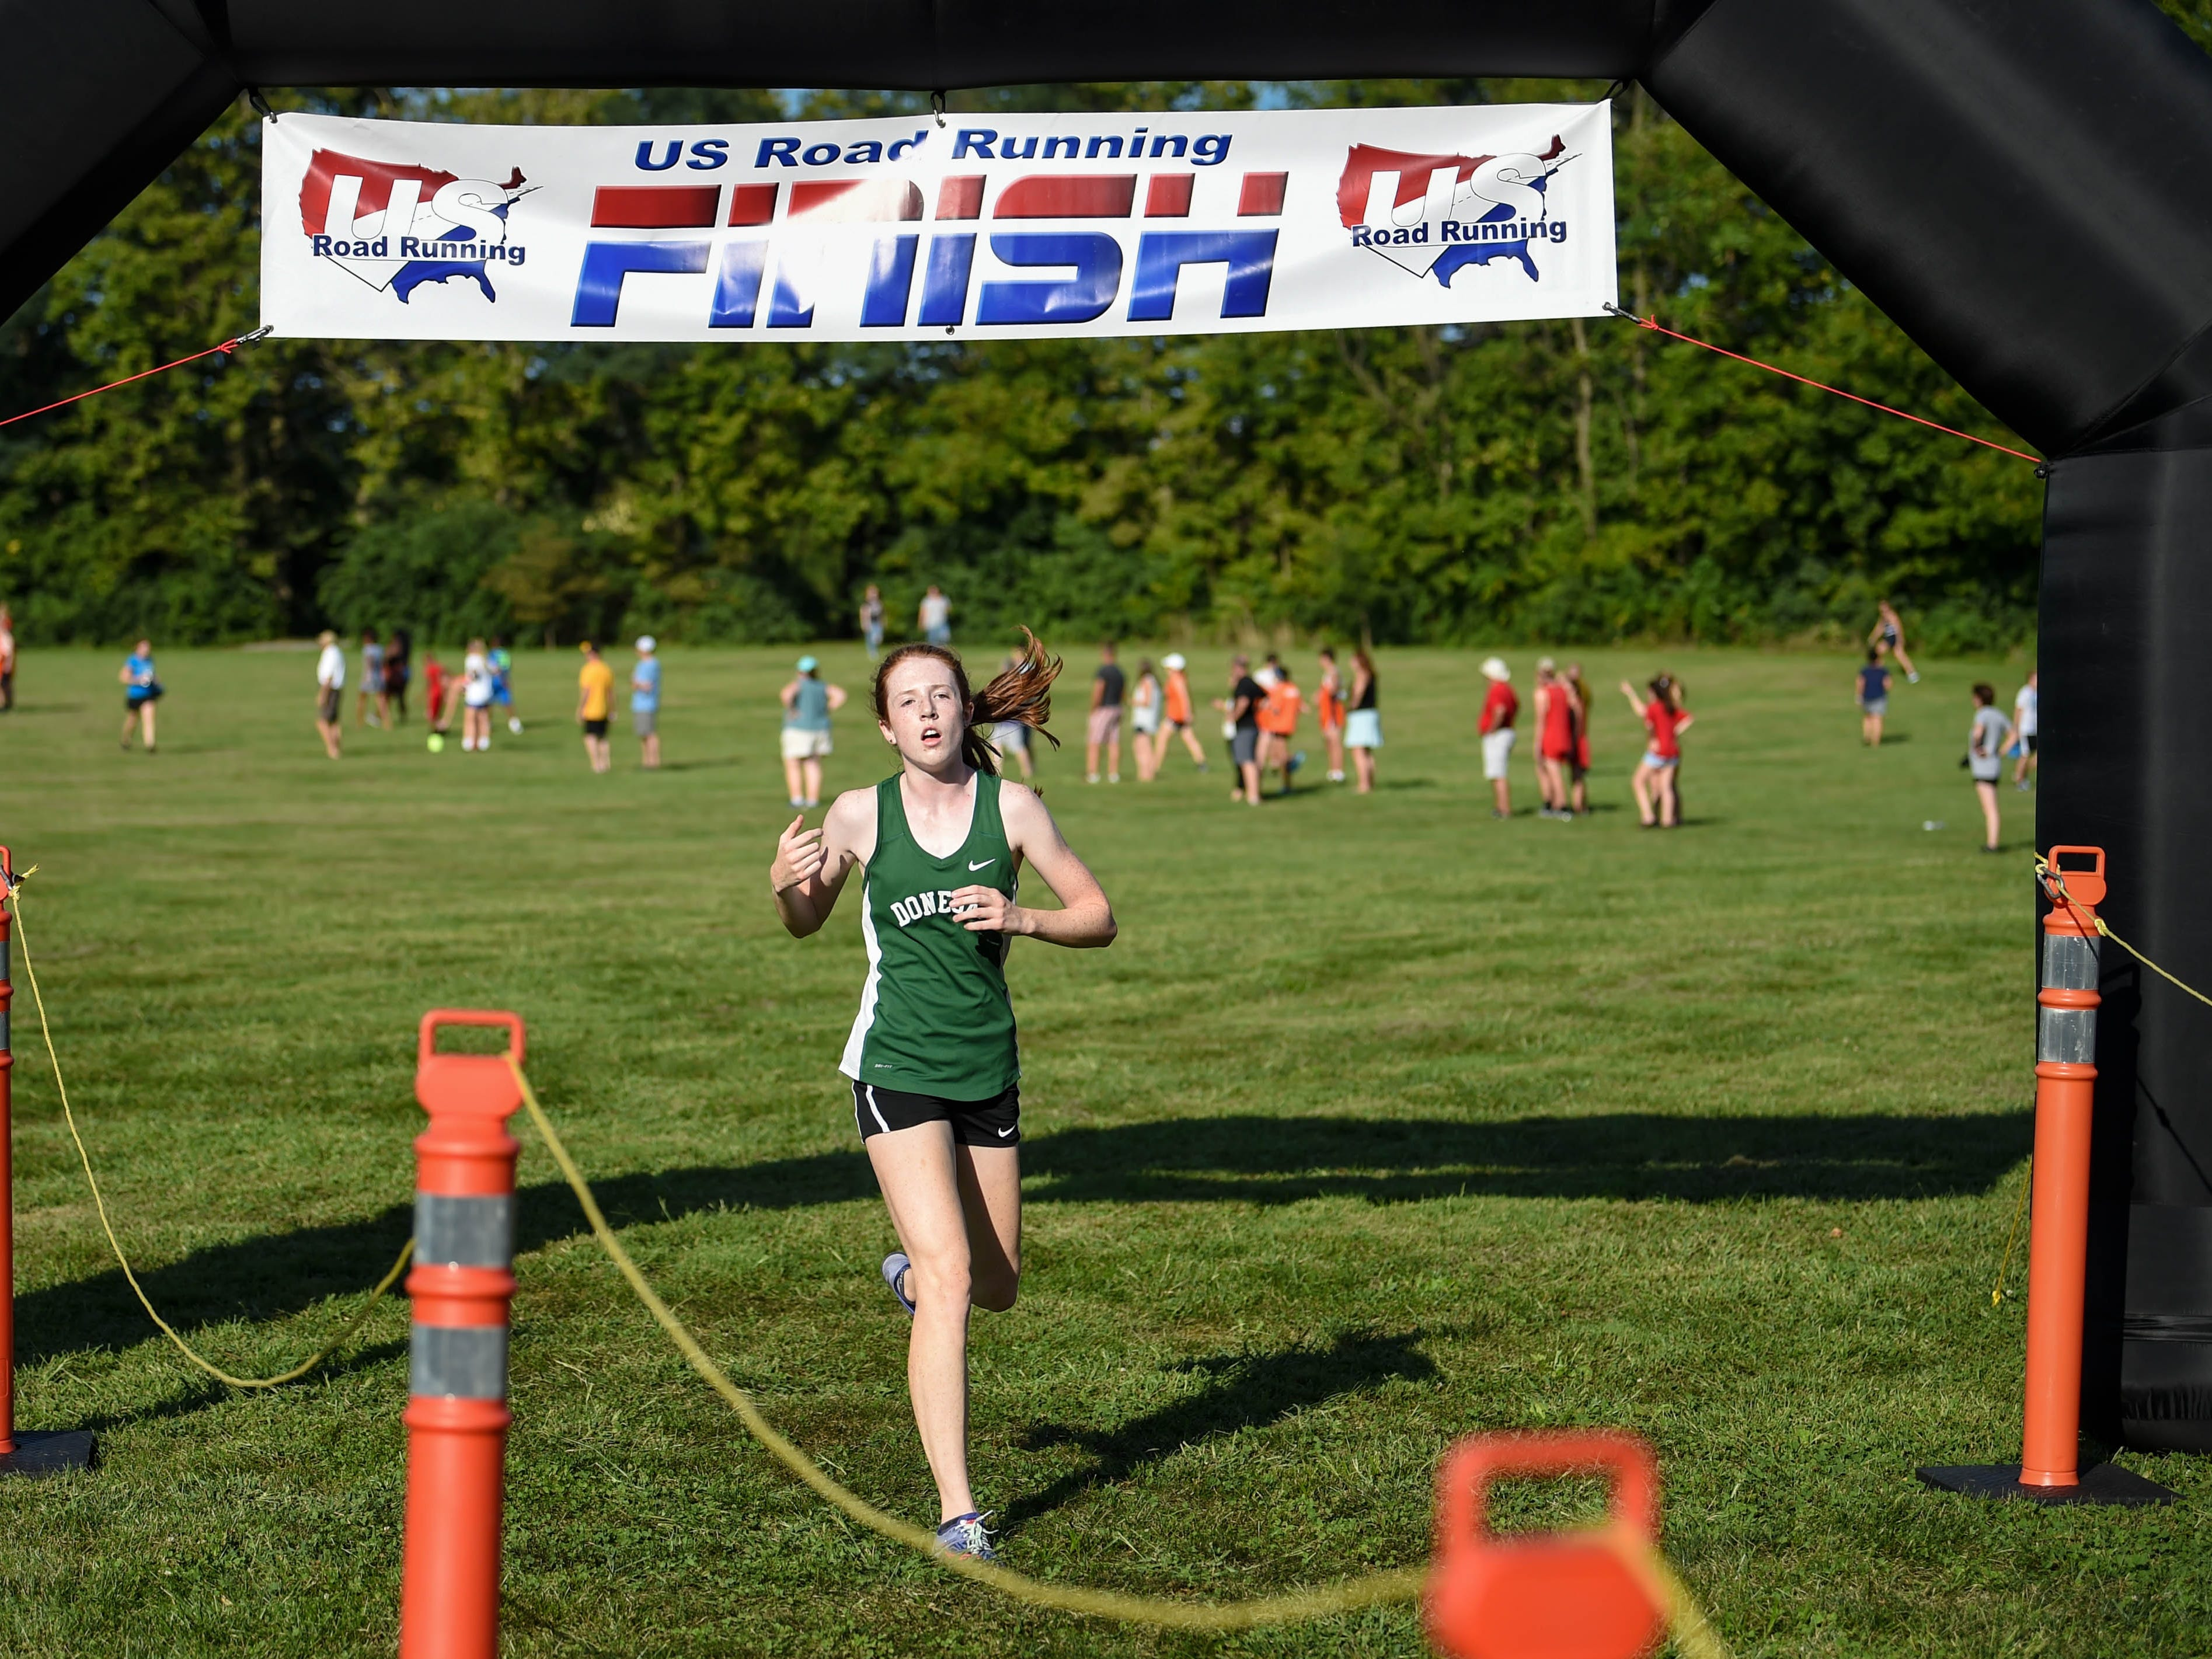 Donegal crosses the finish line during the Cross Country scrimmage at John Rudy County Park on August 30, 2018.